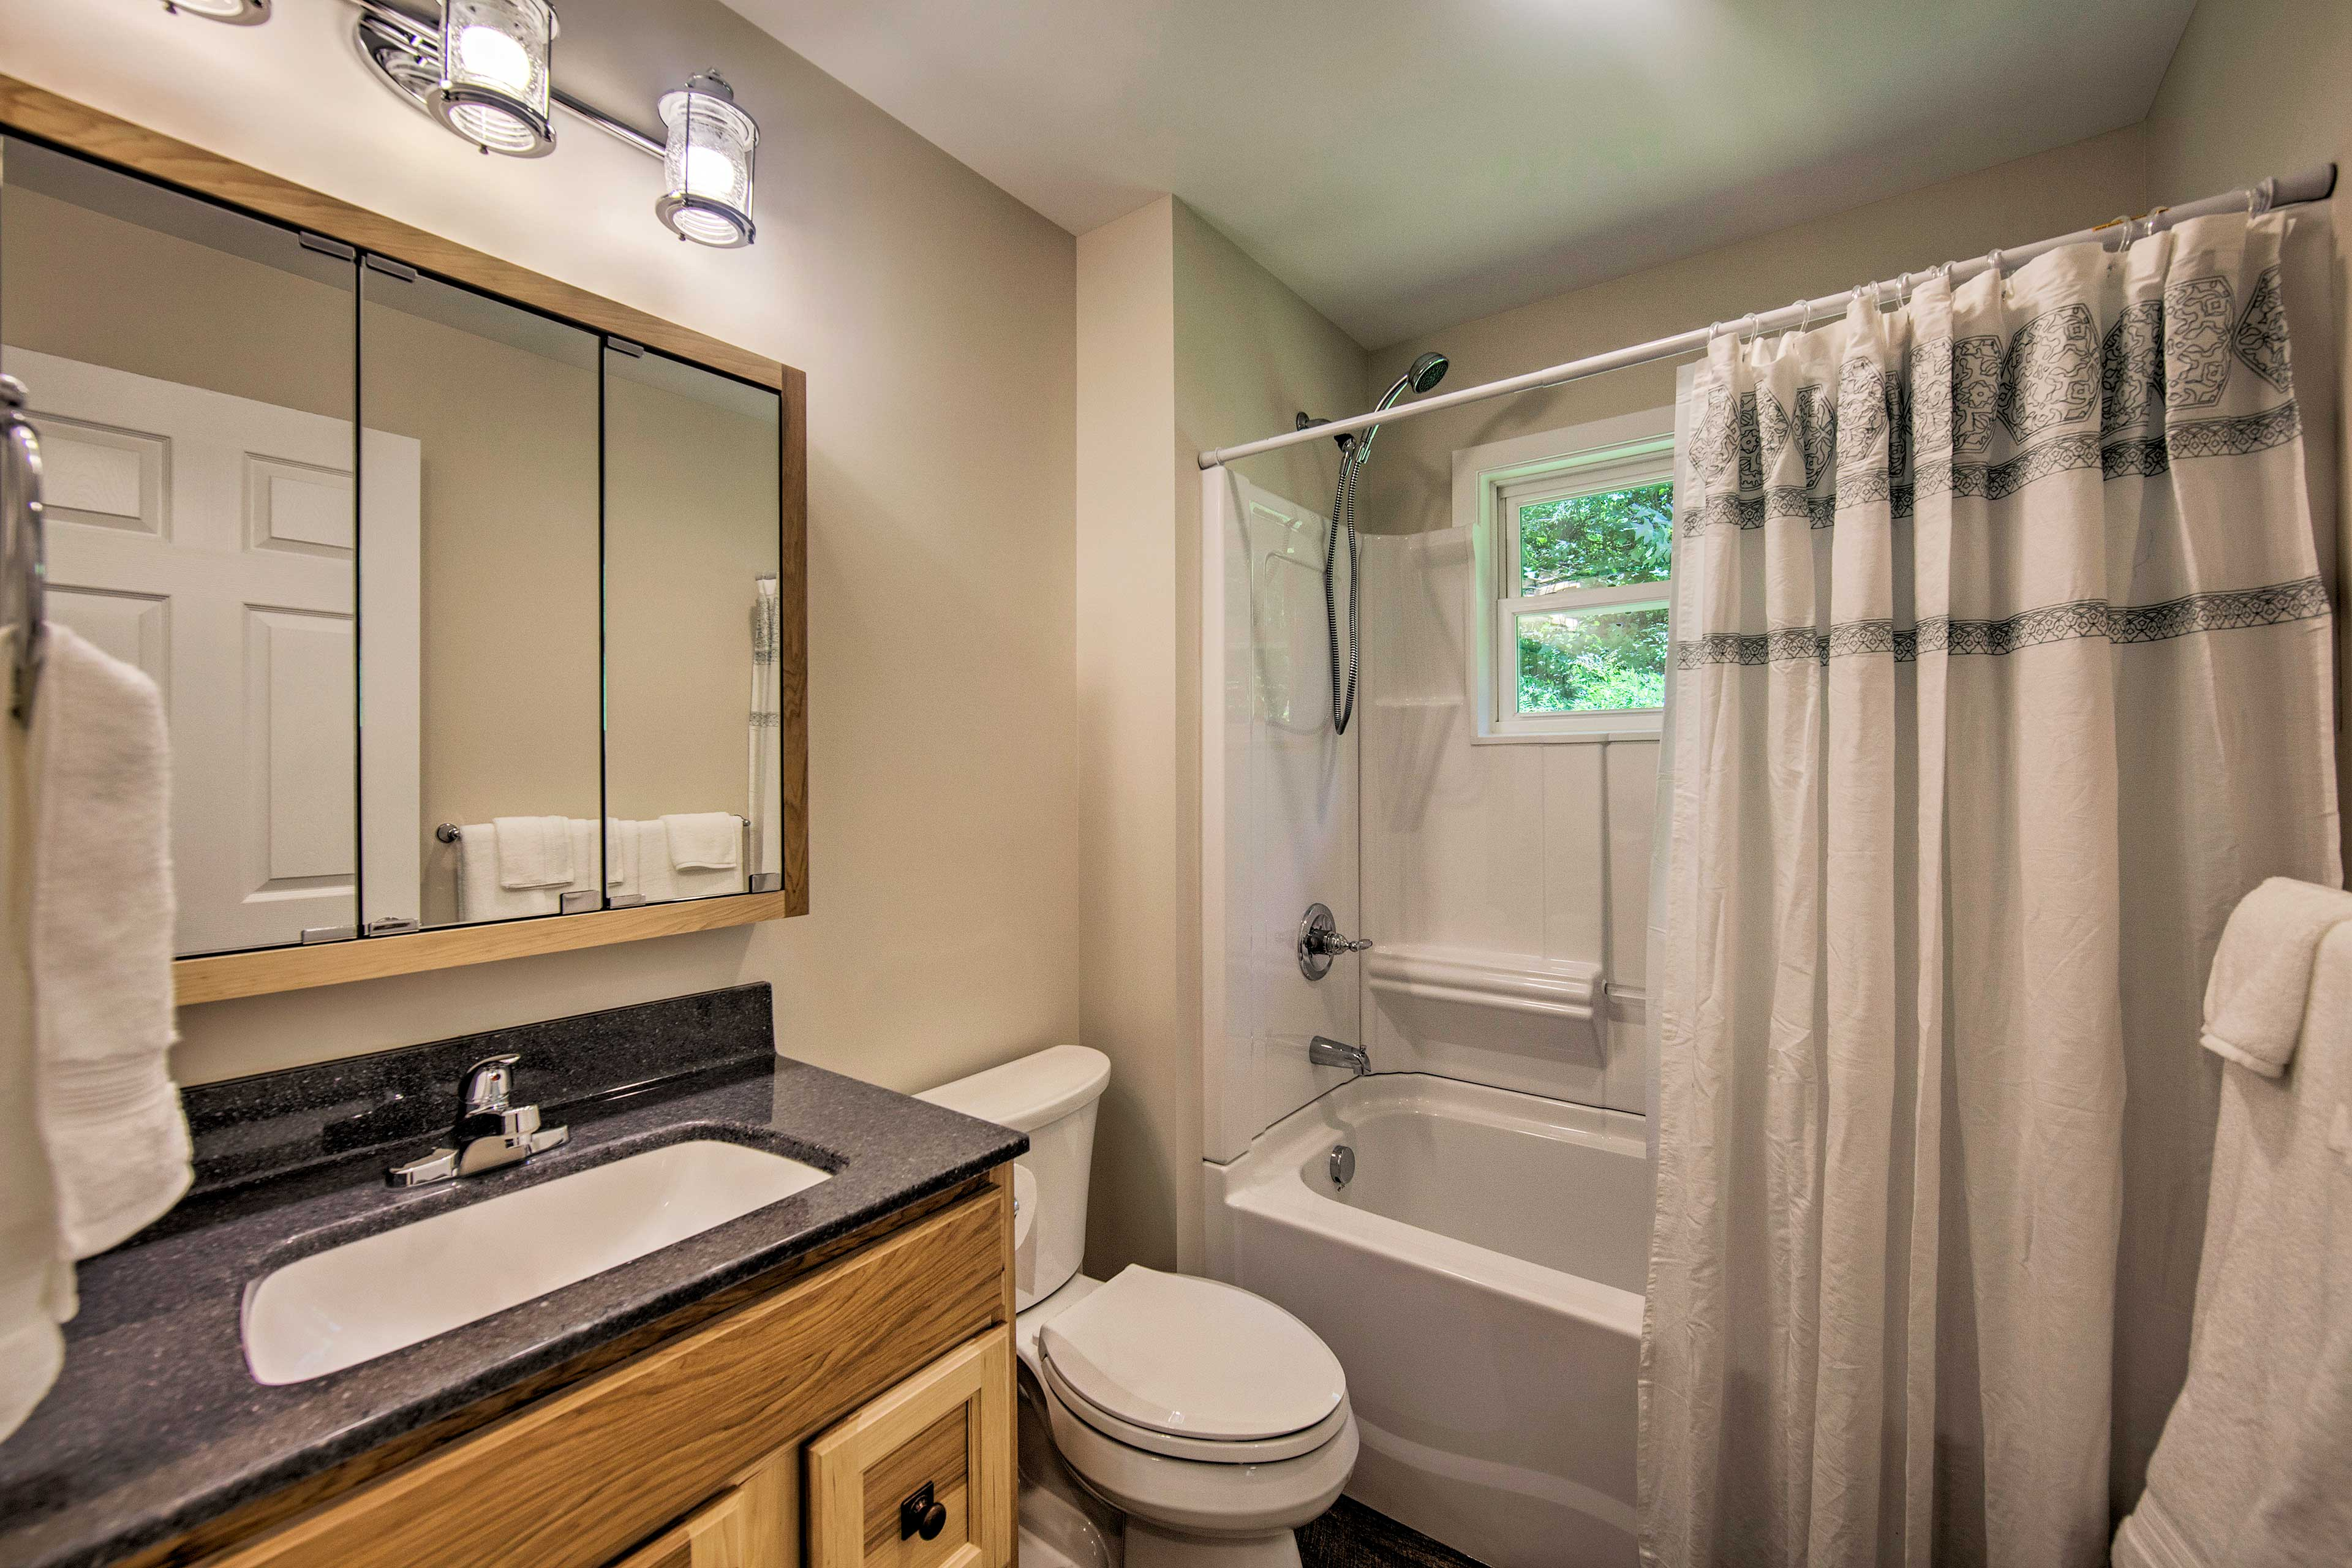 The second bathroom is equipped with a shower/tub combo.